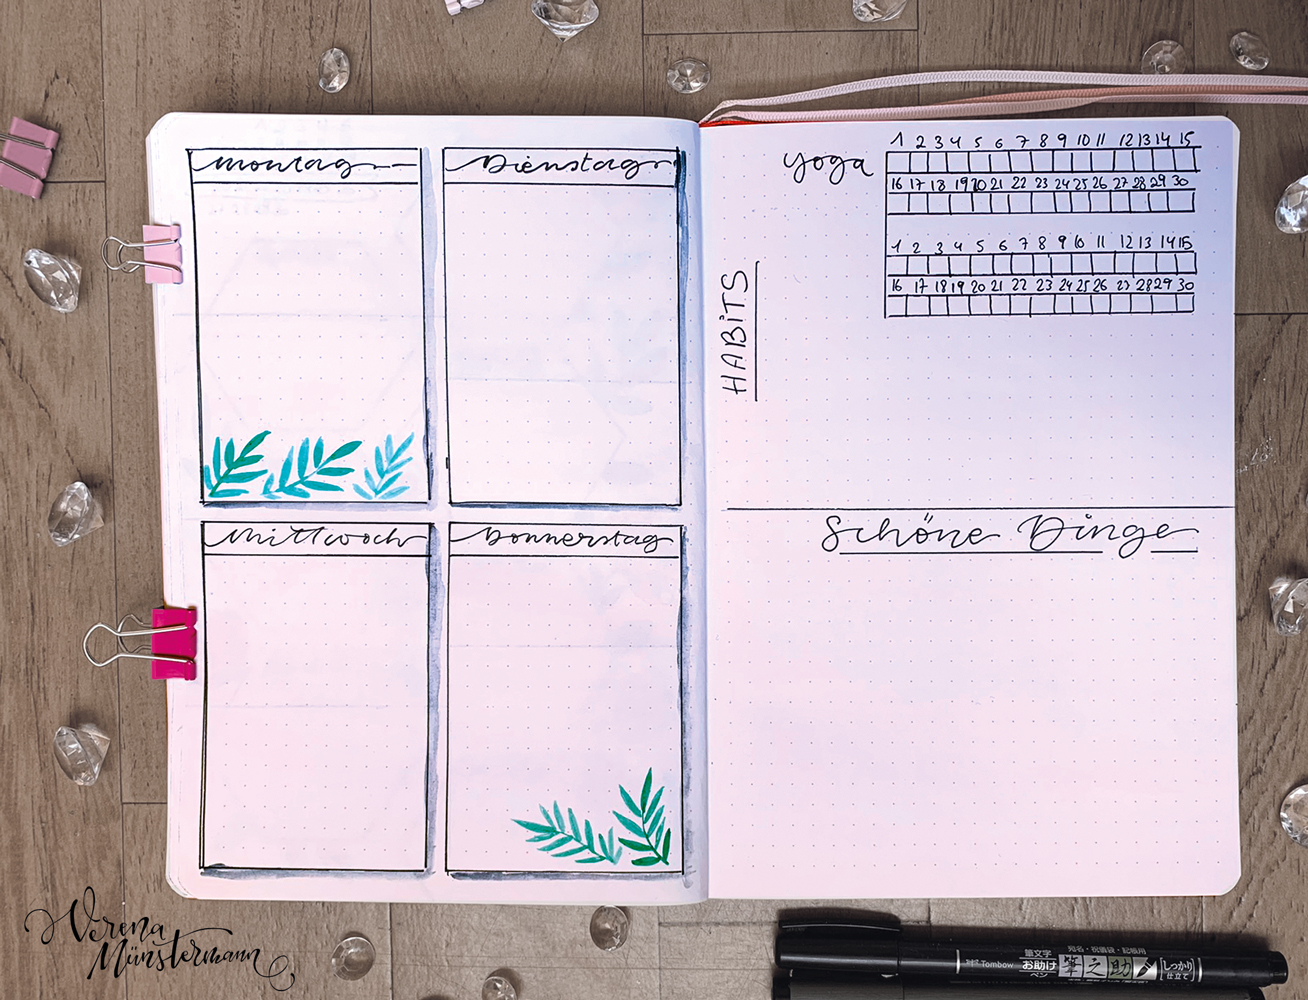 verenamuenstermann - Bullet Journal - Tracker